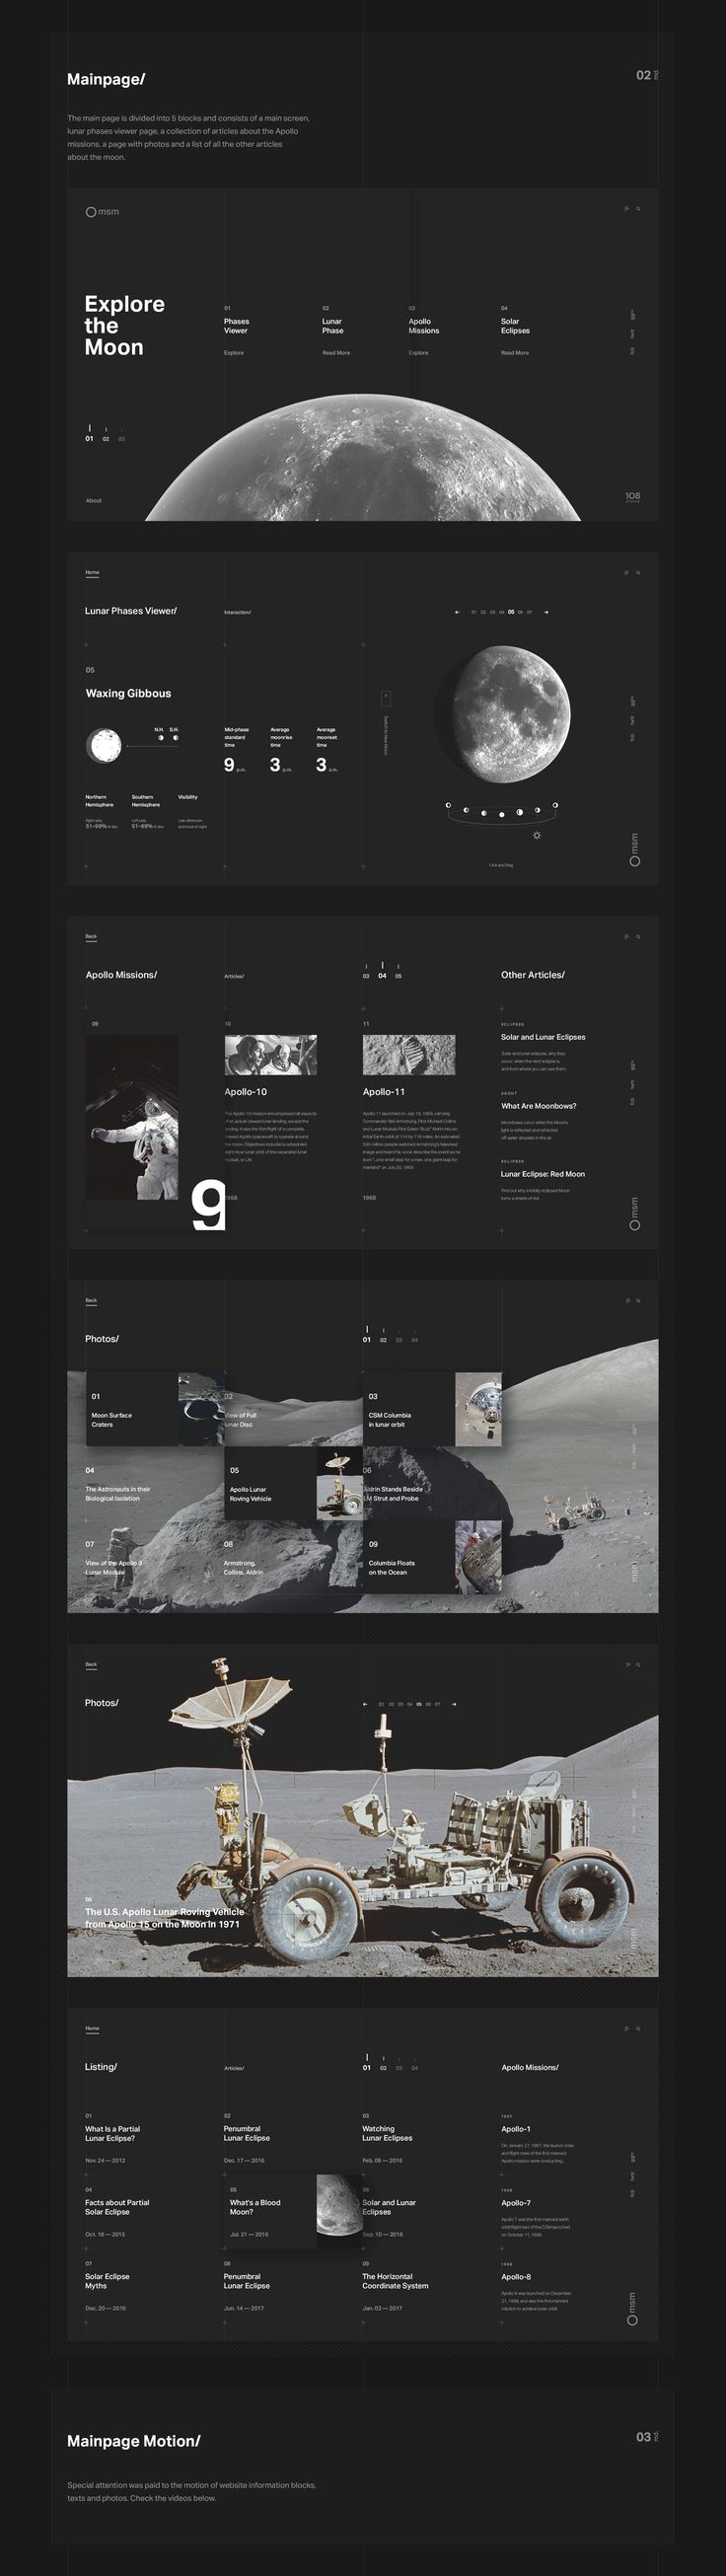 Web Design & UI/UX: Explore the Moon